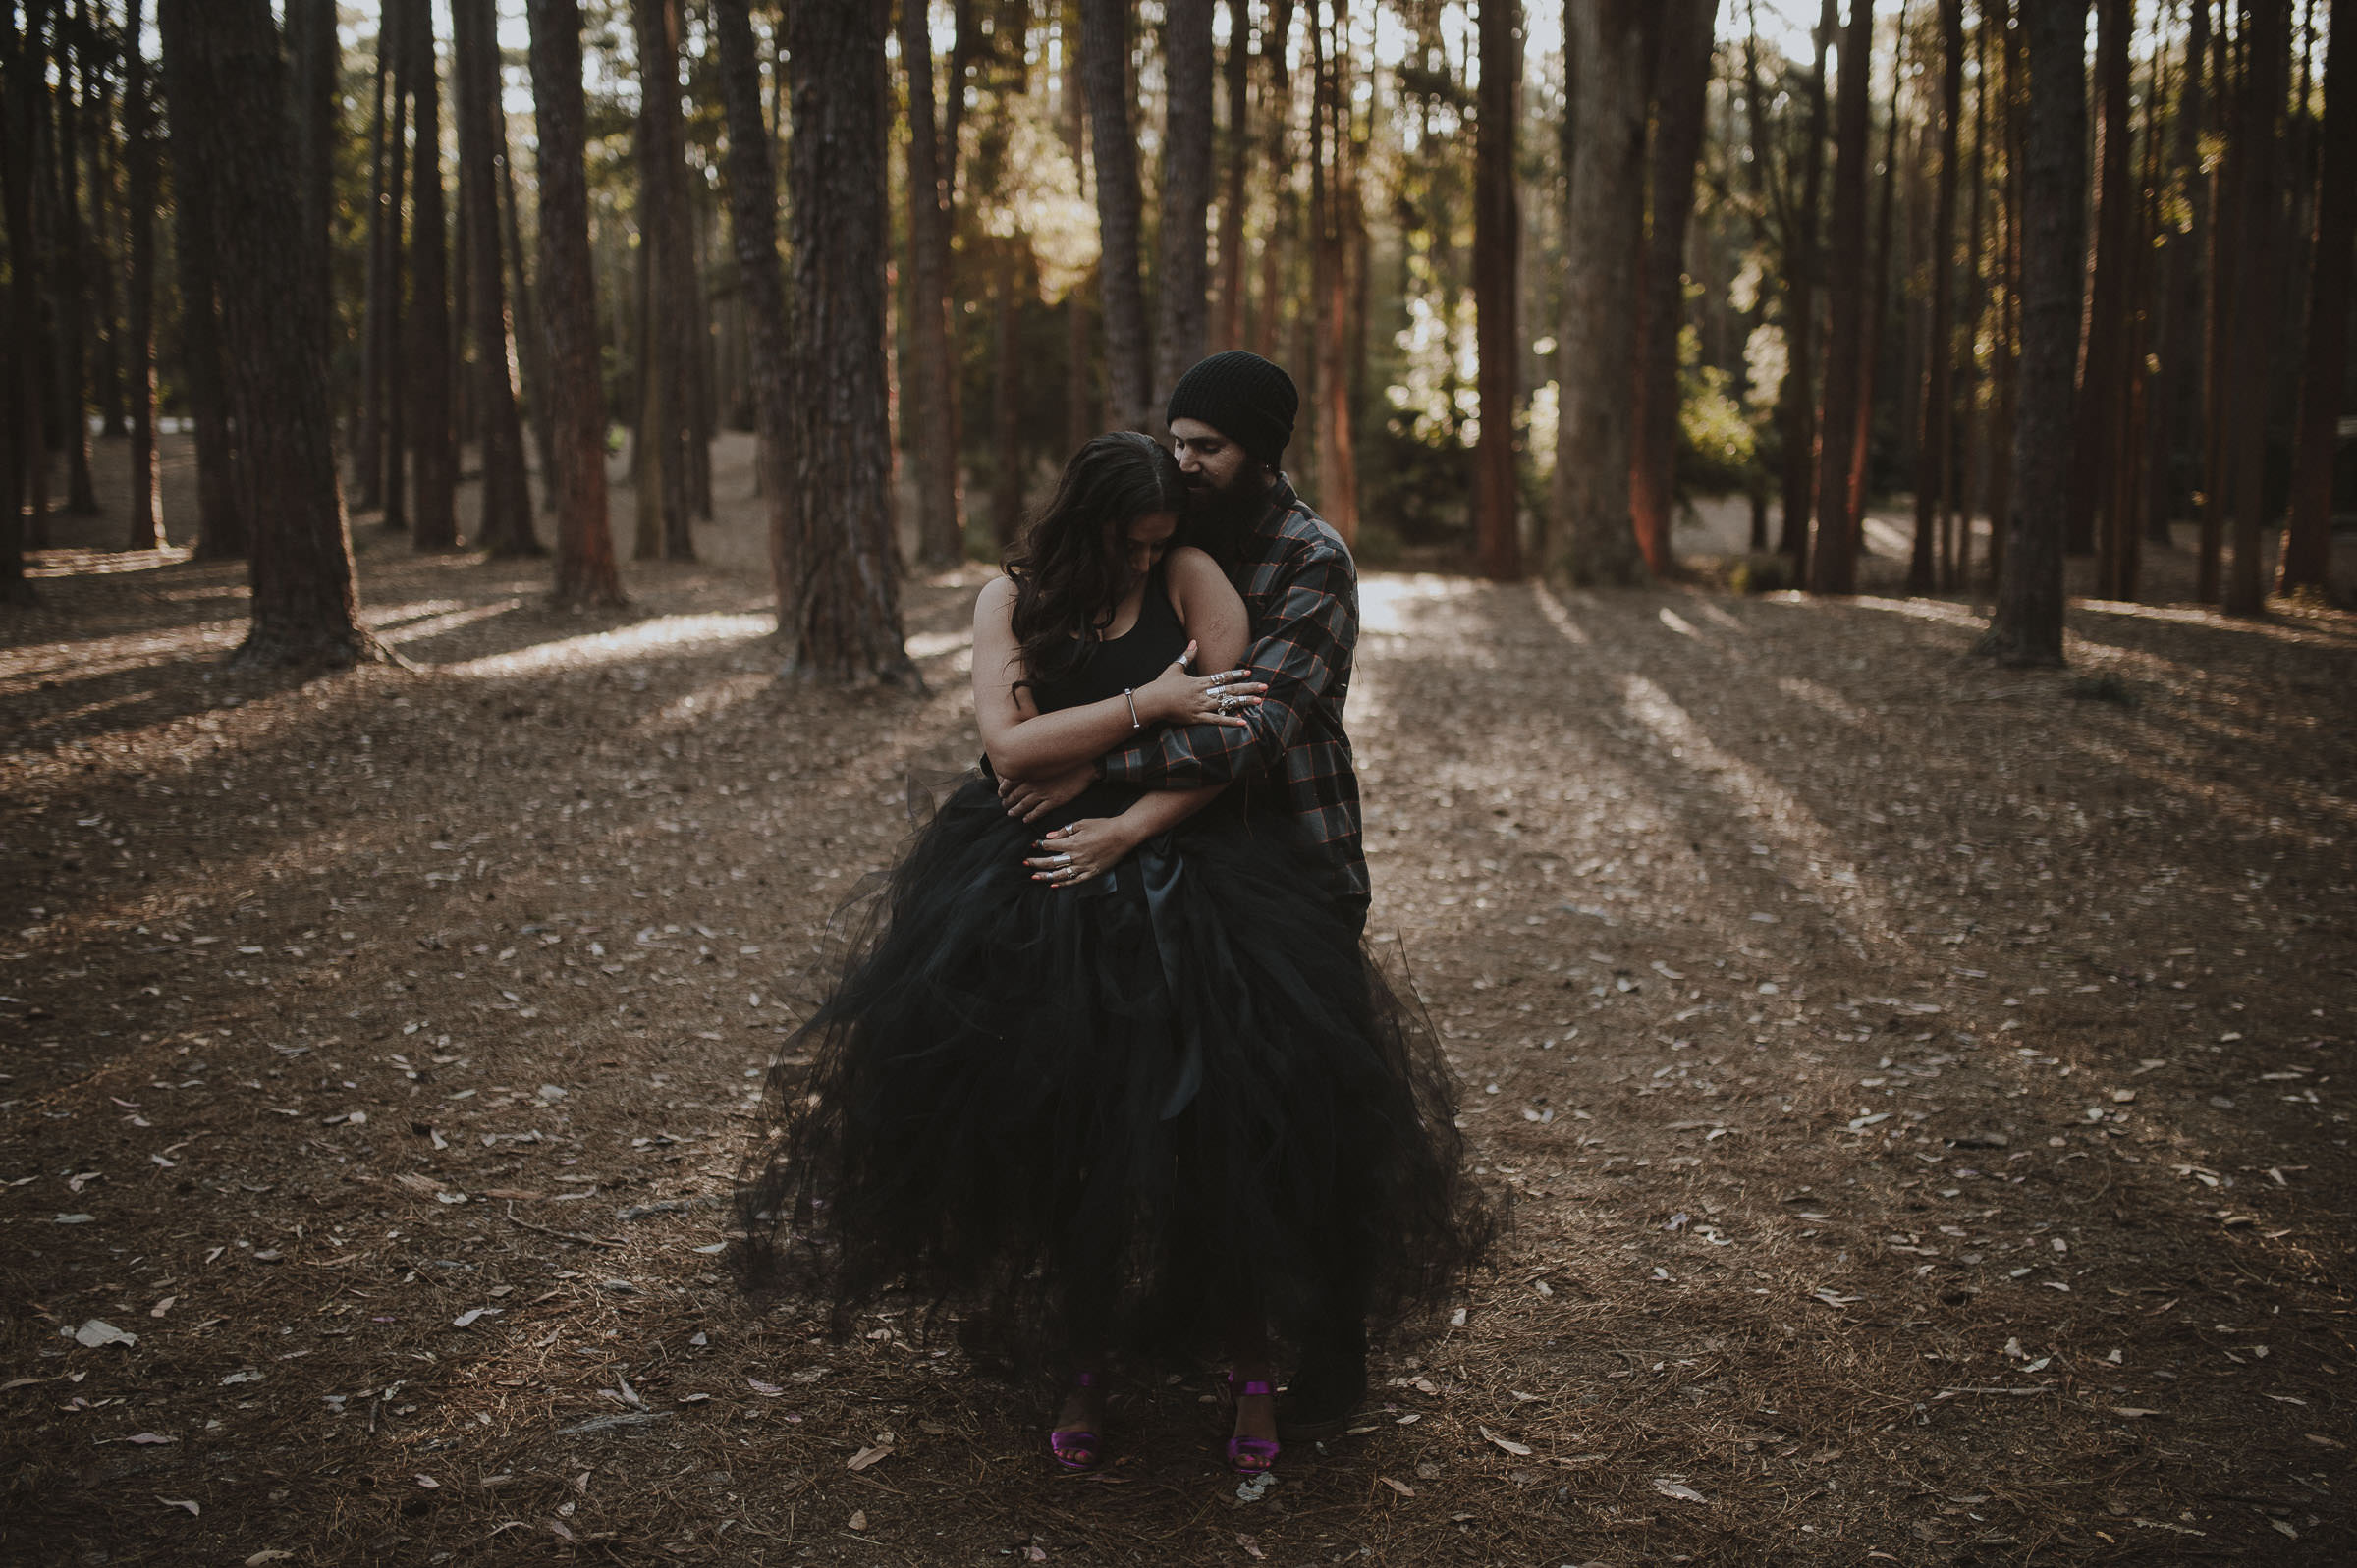 Madeline_Jamie_Watagens_Pine_Forest_Engagement_Shoot_Blog-29.jpg